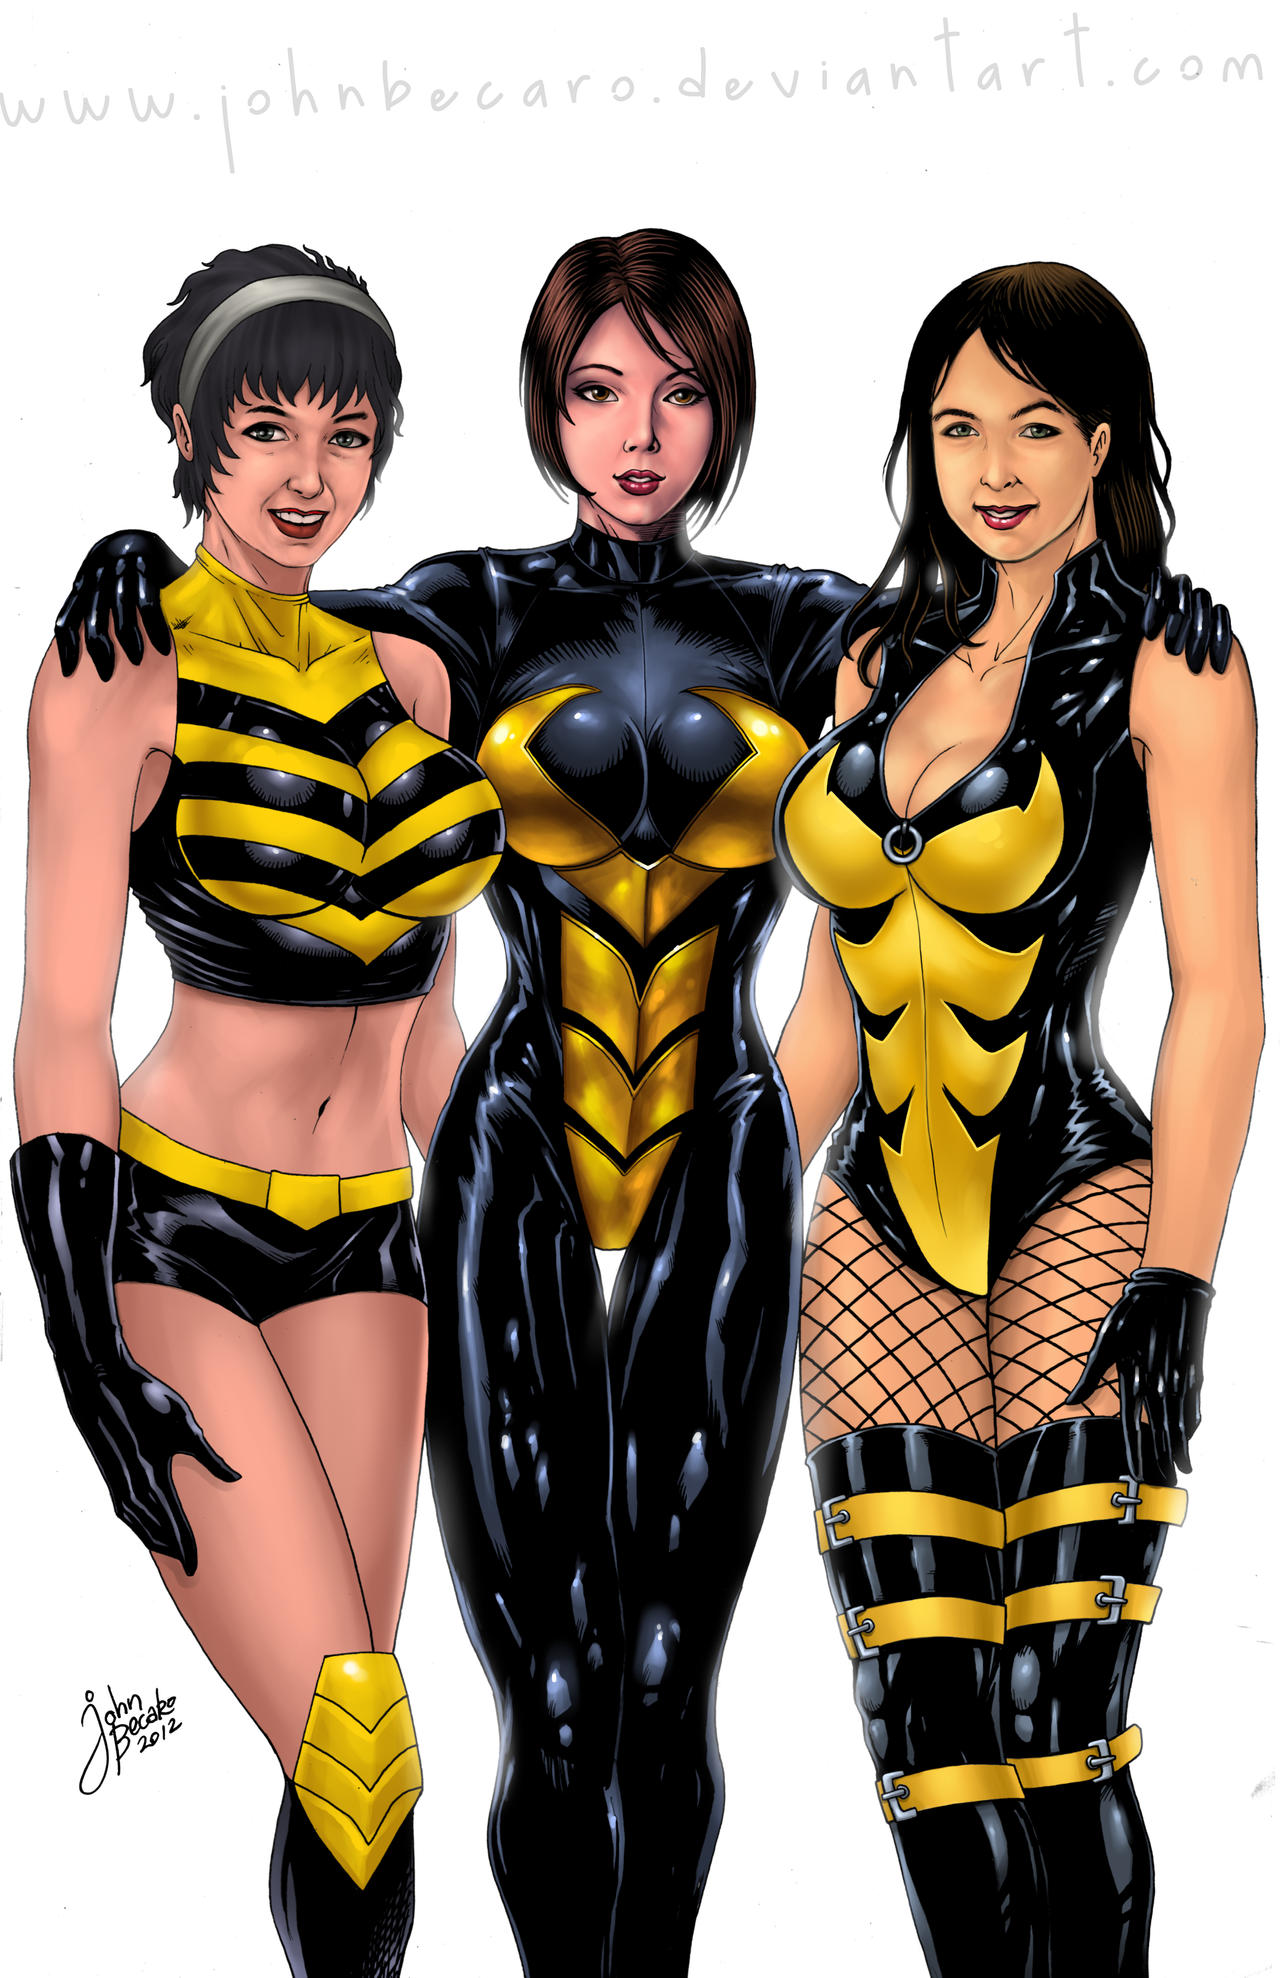 Commission: The Wasp Corps by johnbecaro